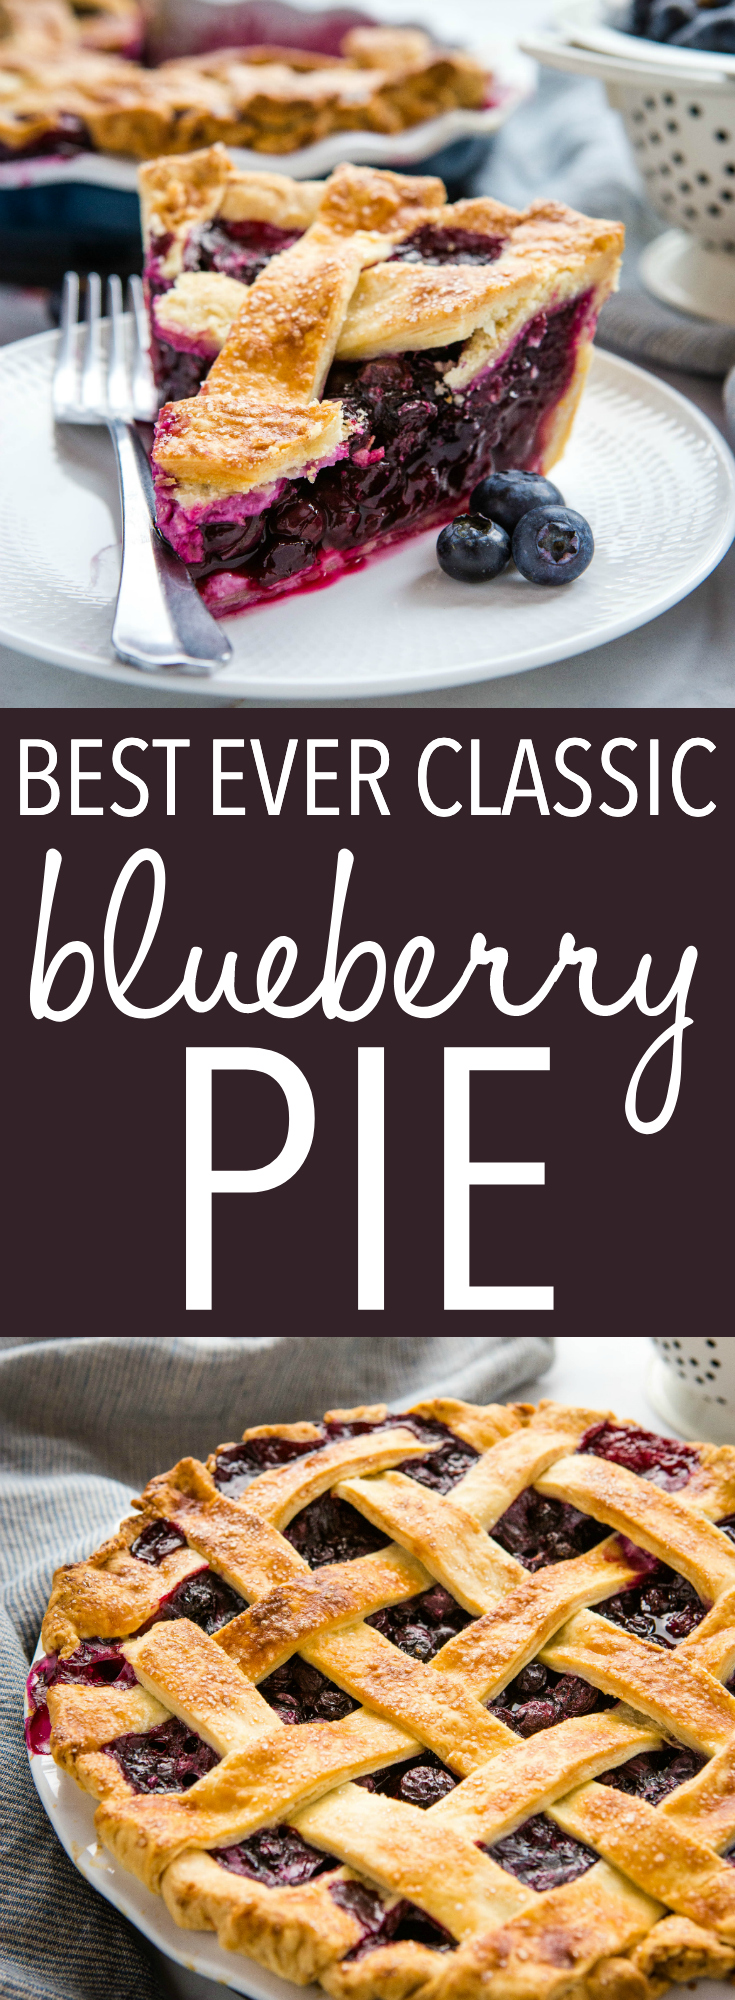 This Classic Blueberry Pie is the perfect summer dessert recipe made with an all-butter crust and fresh juicy blueberries. It's a simple pie recipe that's easy enough for anyone to make - even beginners! Be sure to follow my pro tips below for the perfect old fashioned blueberry pie! Recipe from thebusybaker.ca! #pie #blueberrypie #homemade #fromscratch #blueberries #fruitpie #summer #summerdessert via @busybakerblog